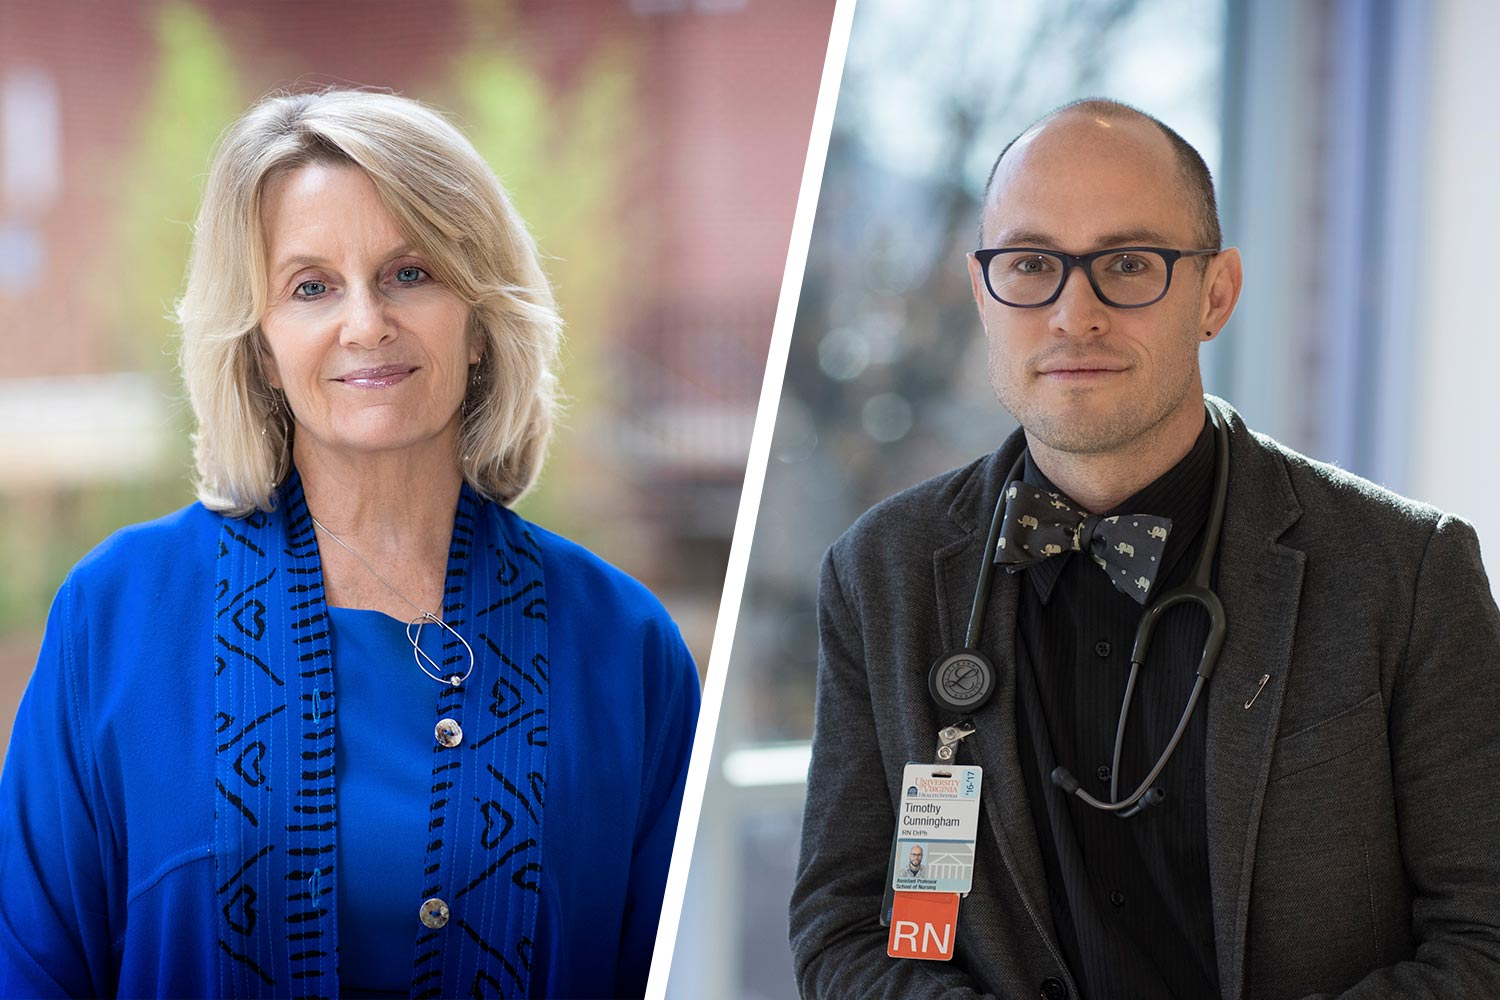 Clareen Wiencek, left, and Tim Cunningham were named to the American Academy of Nursing's 2019 class of academy fellows. (Photos by Dan Addison, University Communications)